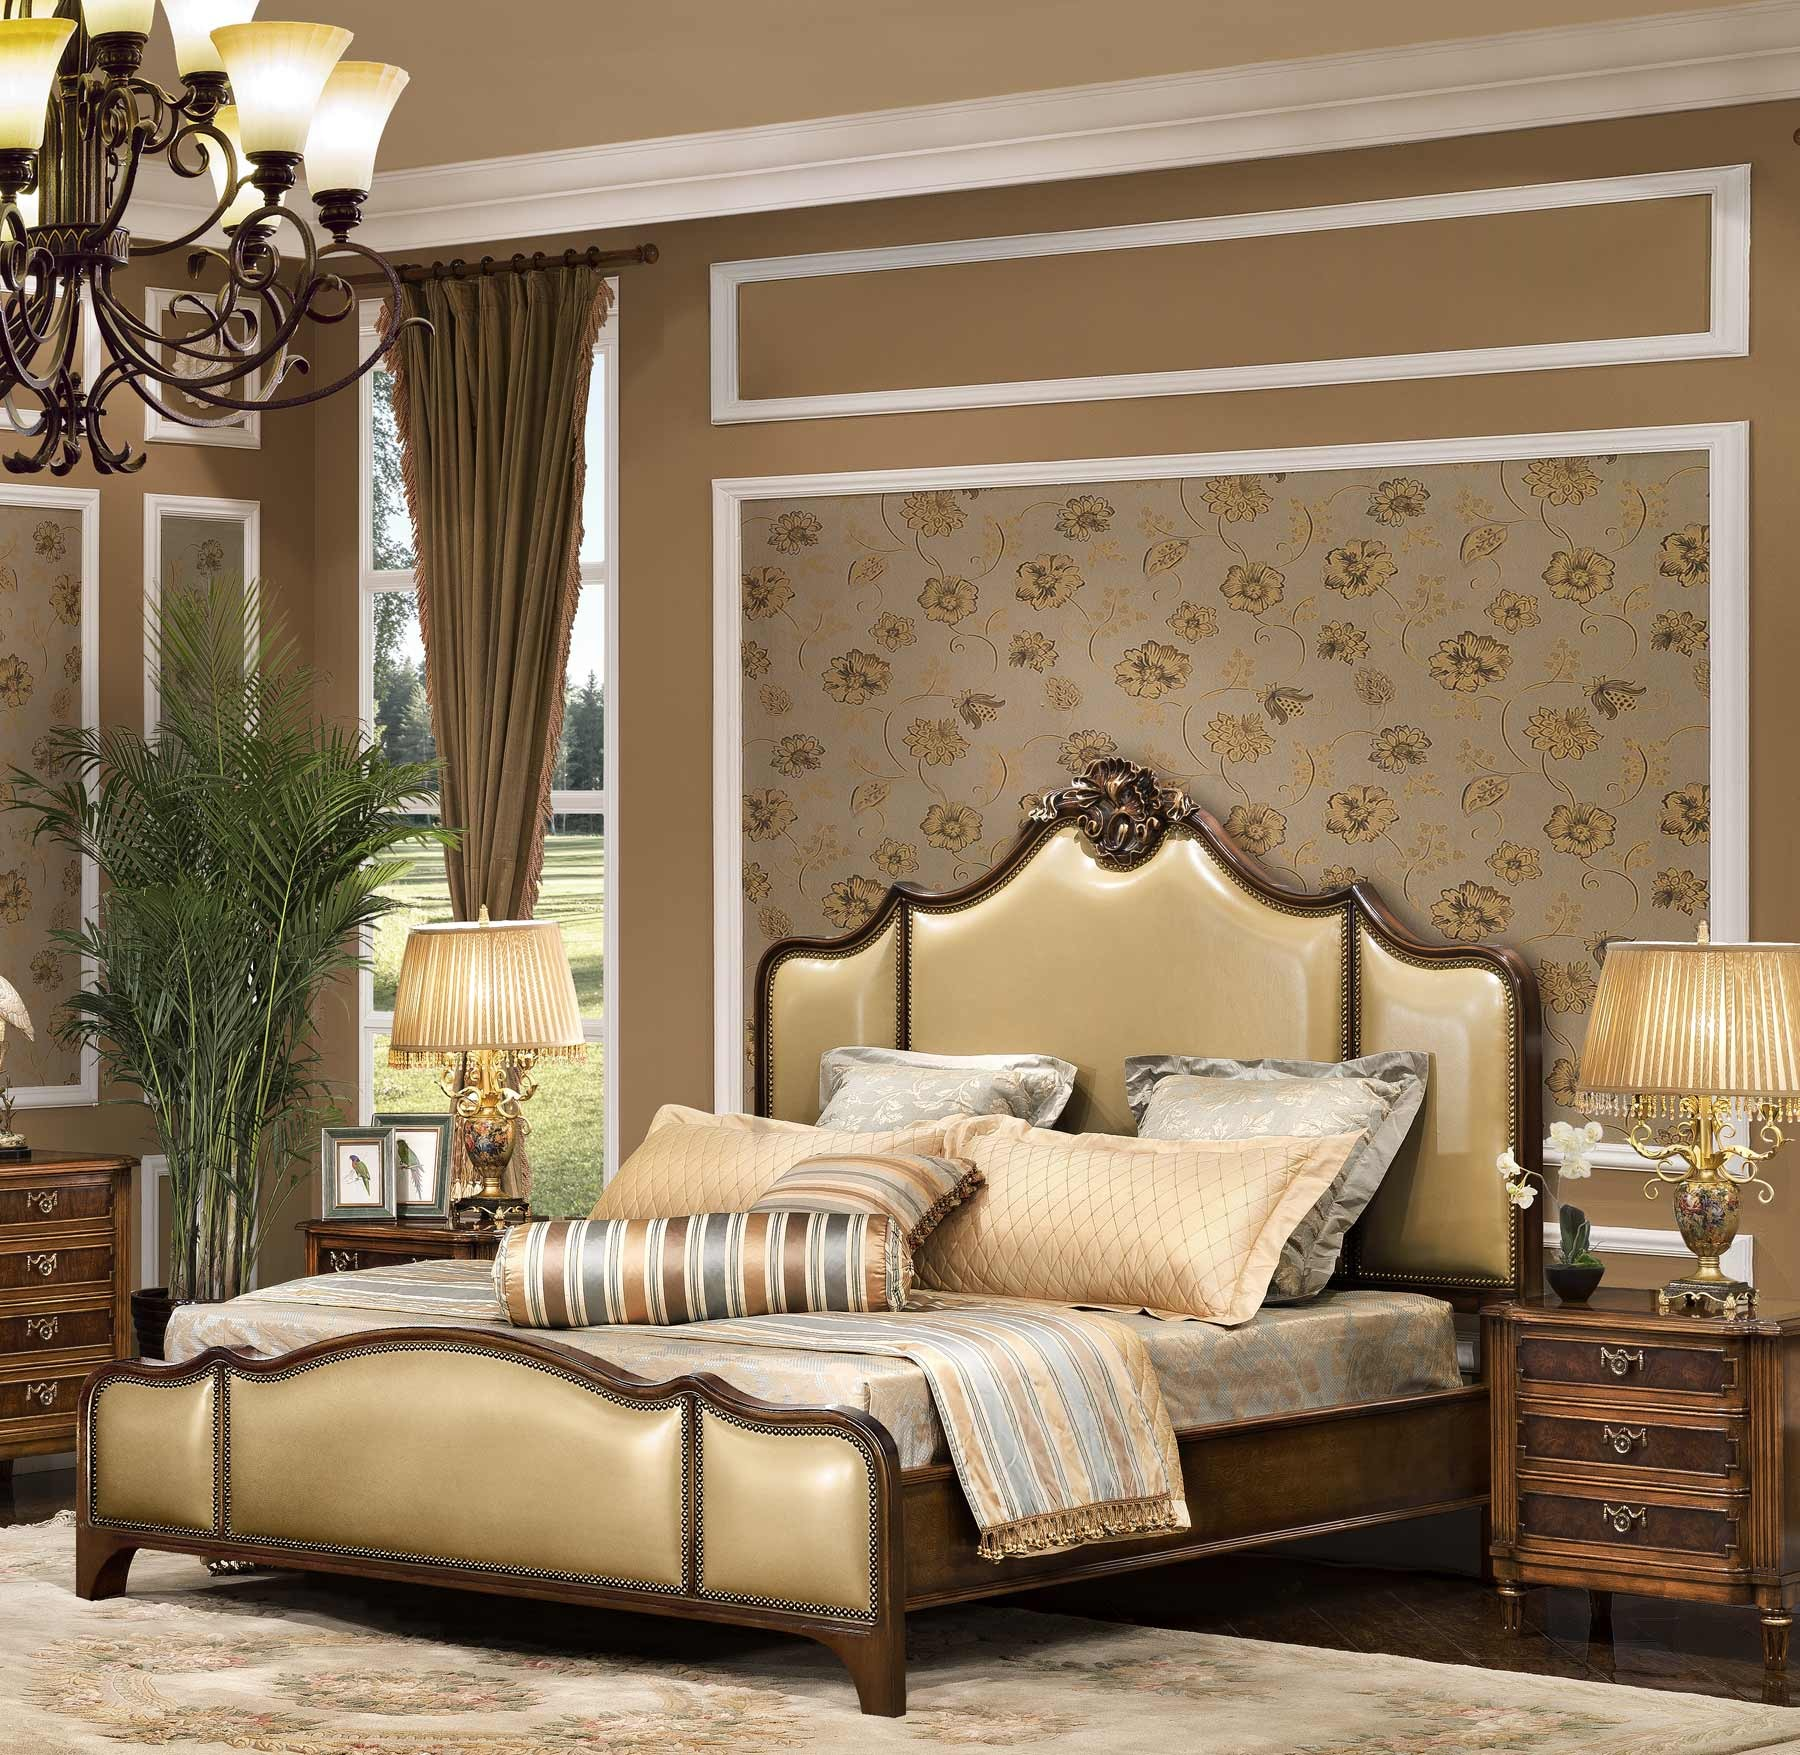 Dorchester Bed shown in Vintage Cohiba finish